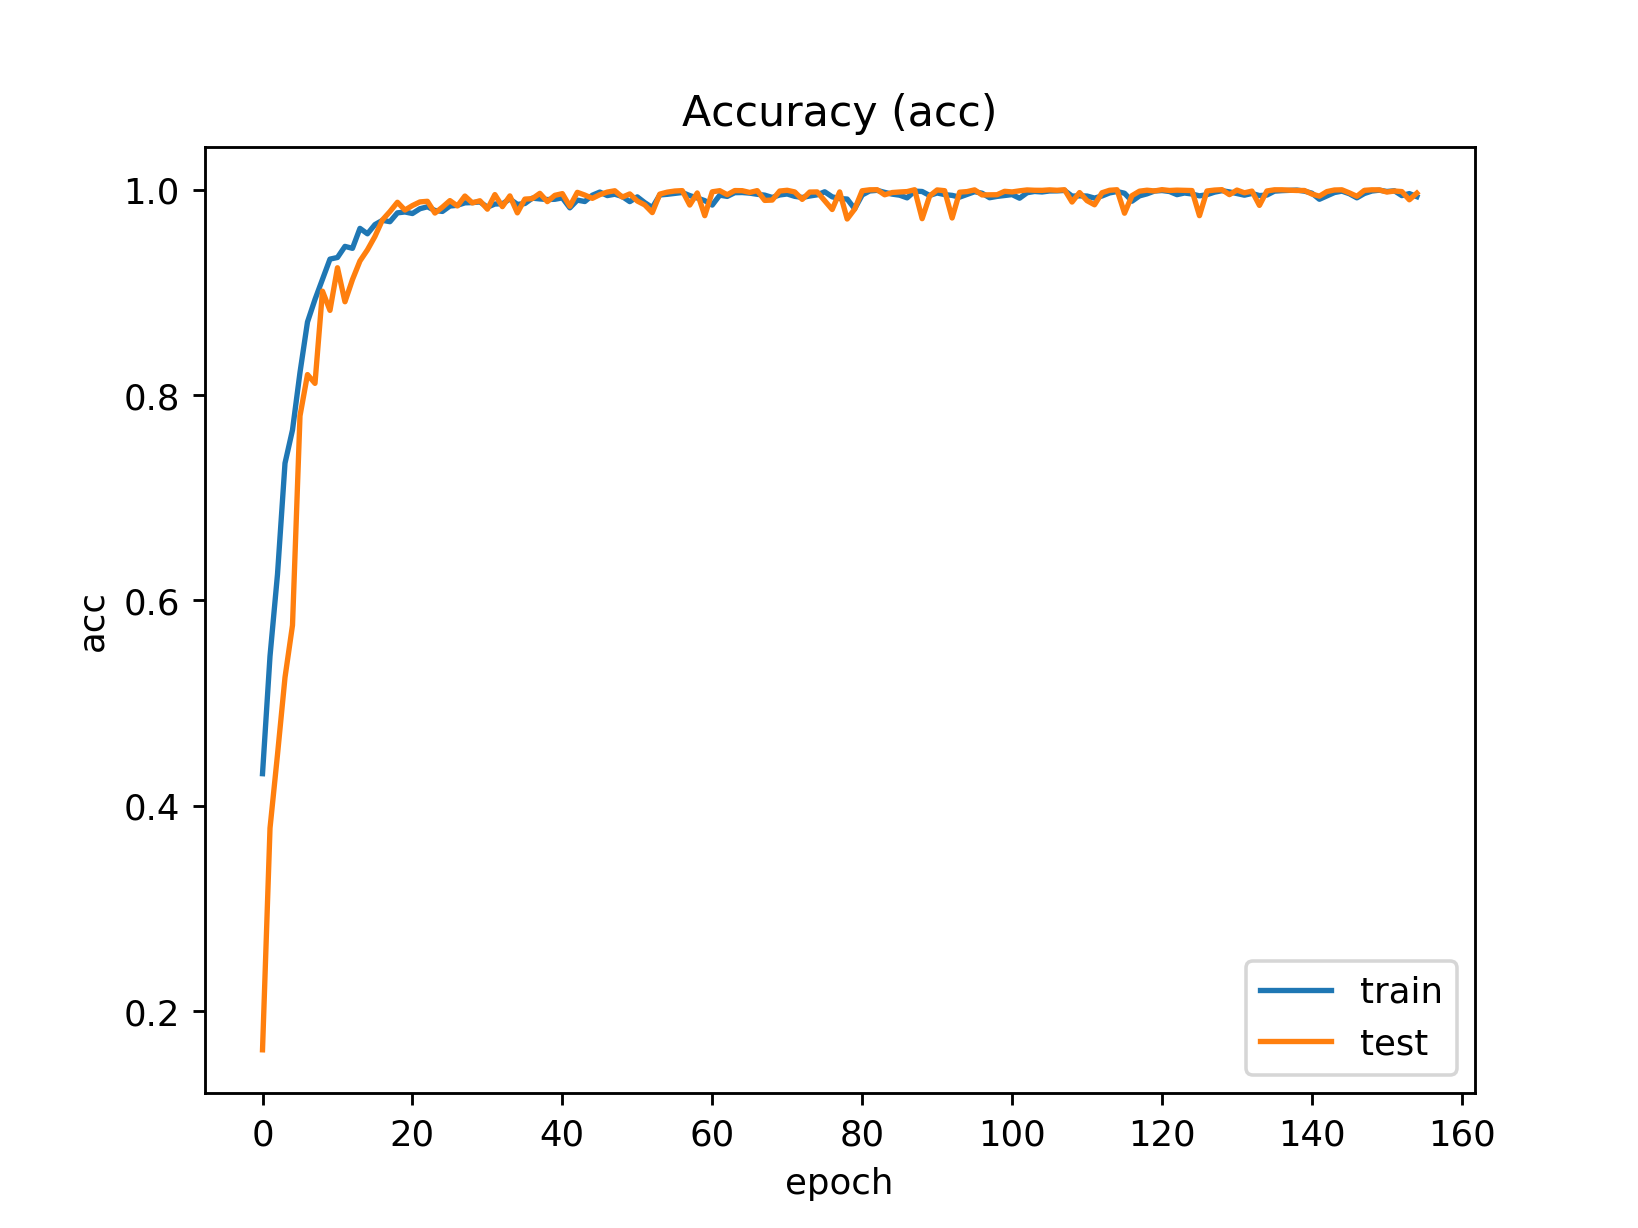 Plot showing convergence of accuracy over training time